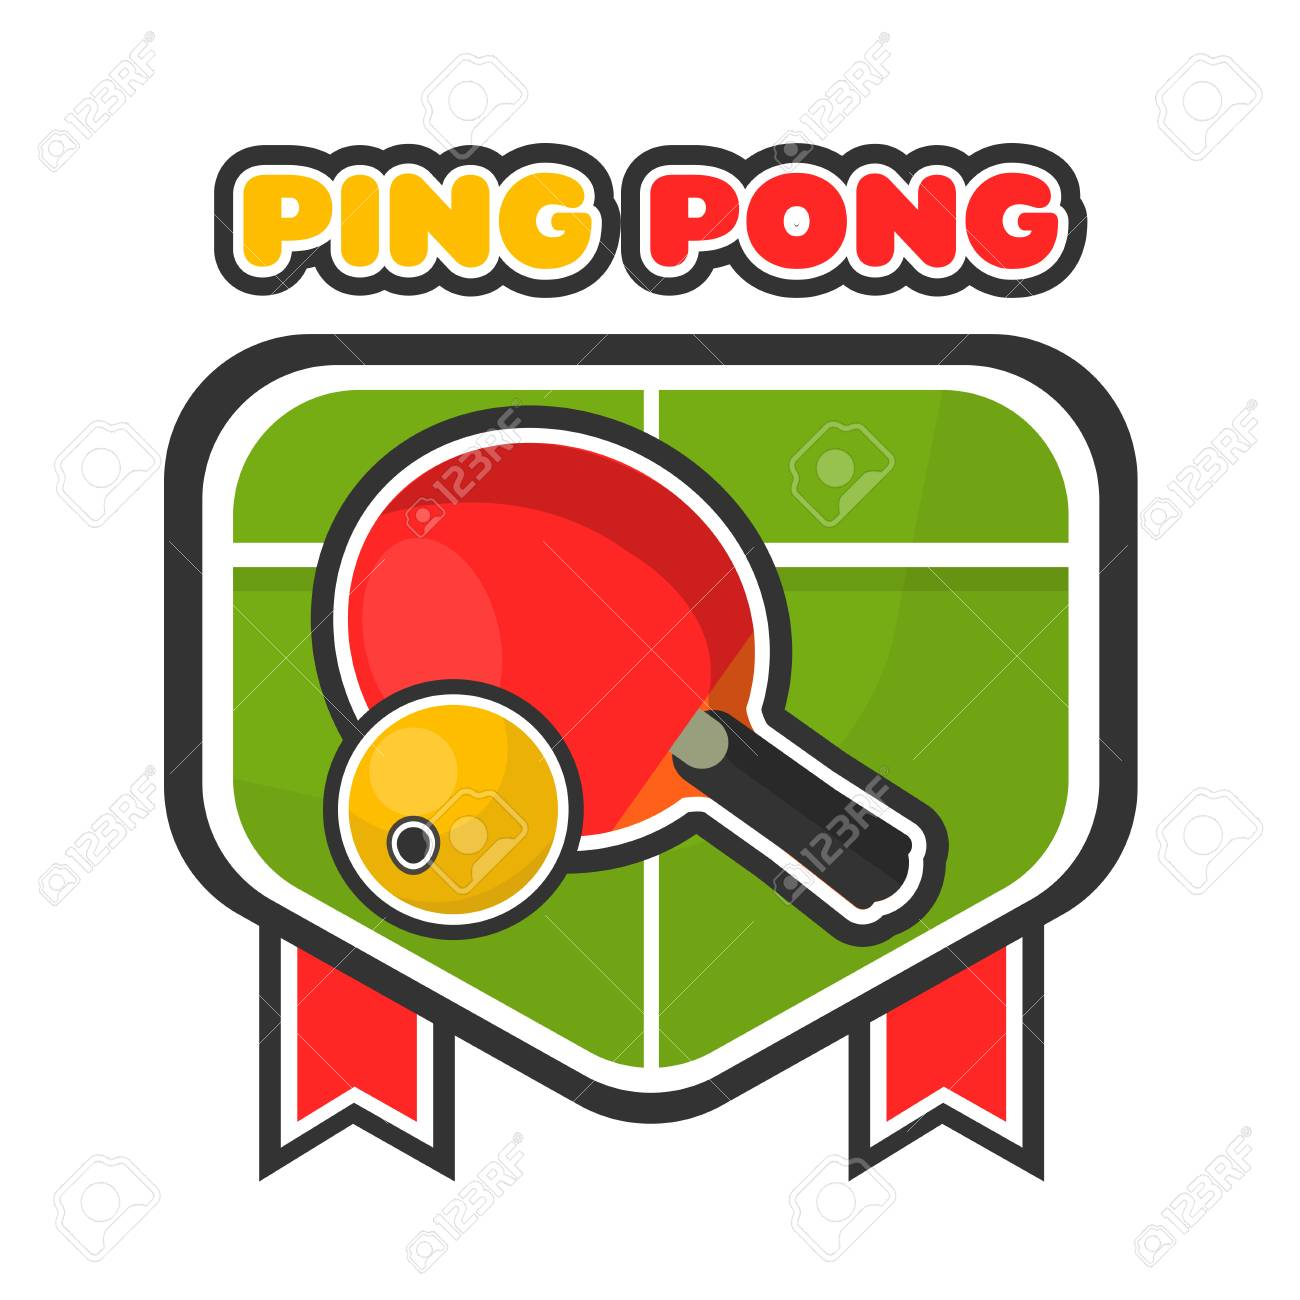 Ping Pong Game With American Lives >> Ping Pong Game Colorful Logotype With Table And Racket Royalty Free